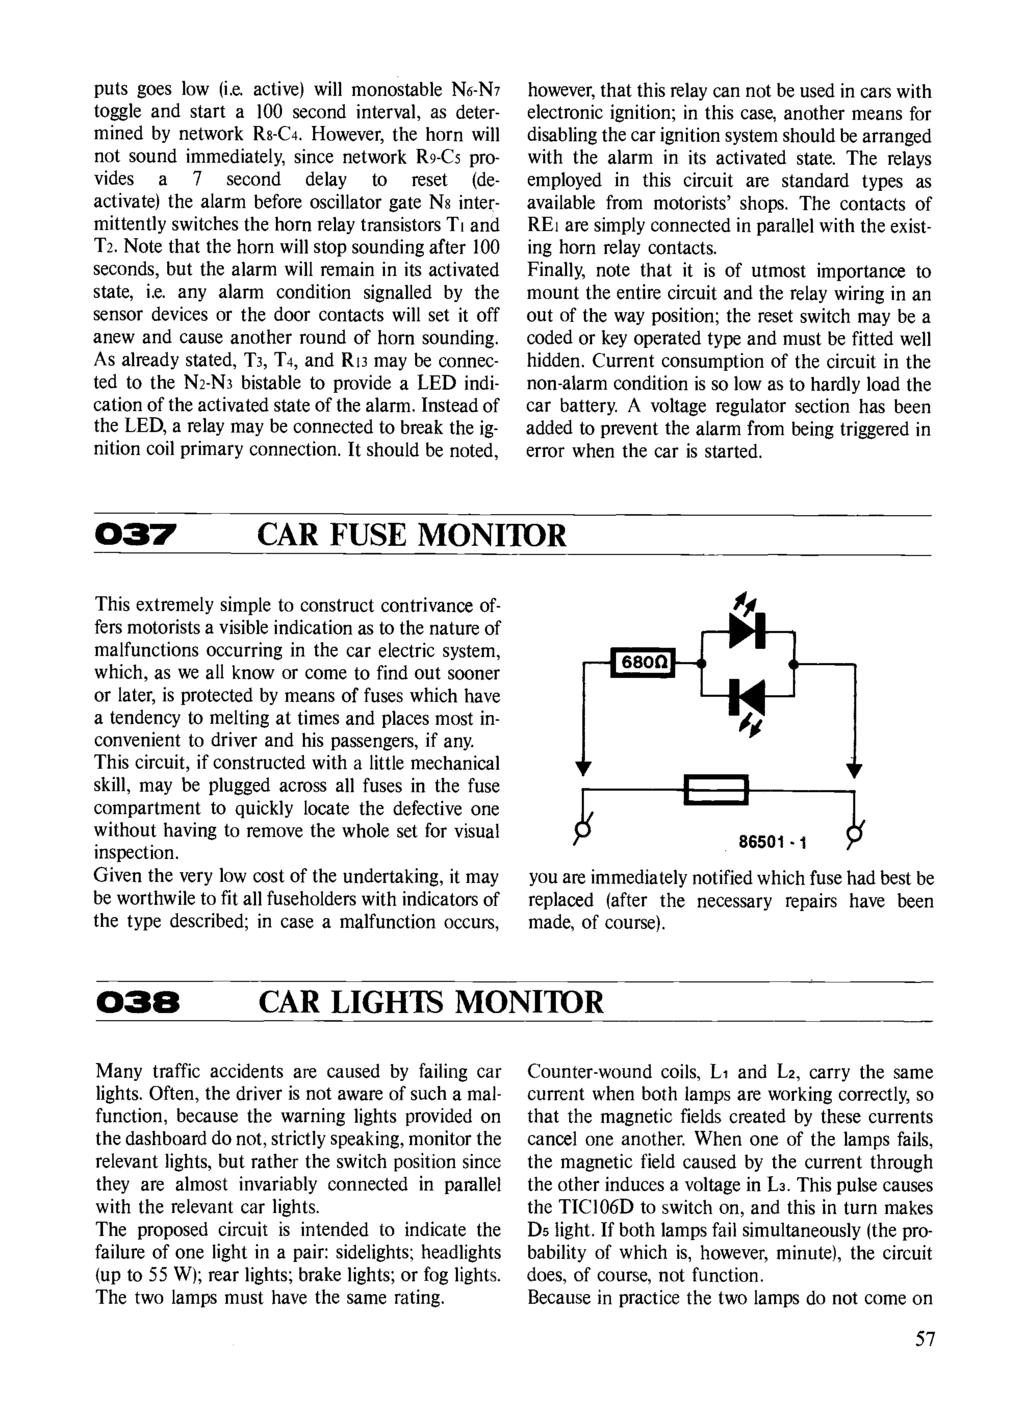 Circuits Elektor Electronics Pdf Circuit The Relay Switch 4 7k 9v As Aug Ldr A To Light Puts Goes Low Ie Active Will Monostable N6 N7 Toggle And Start